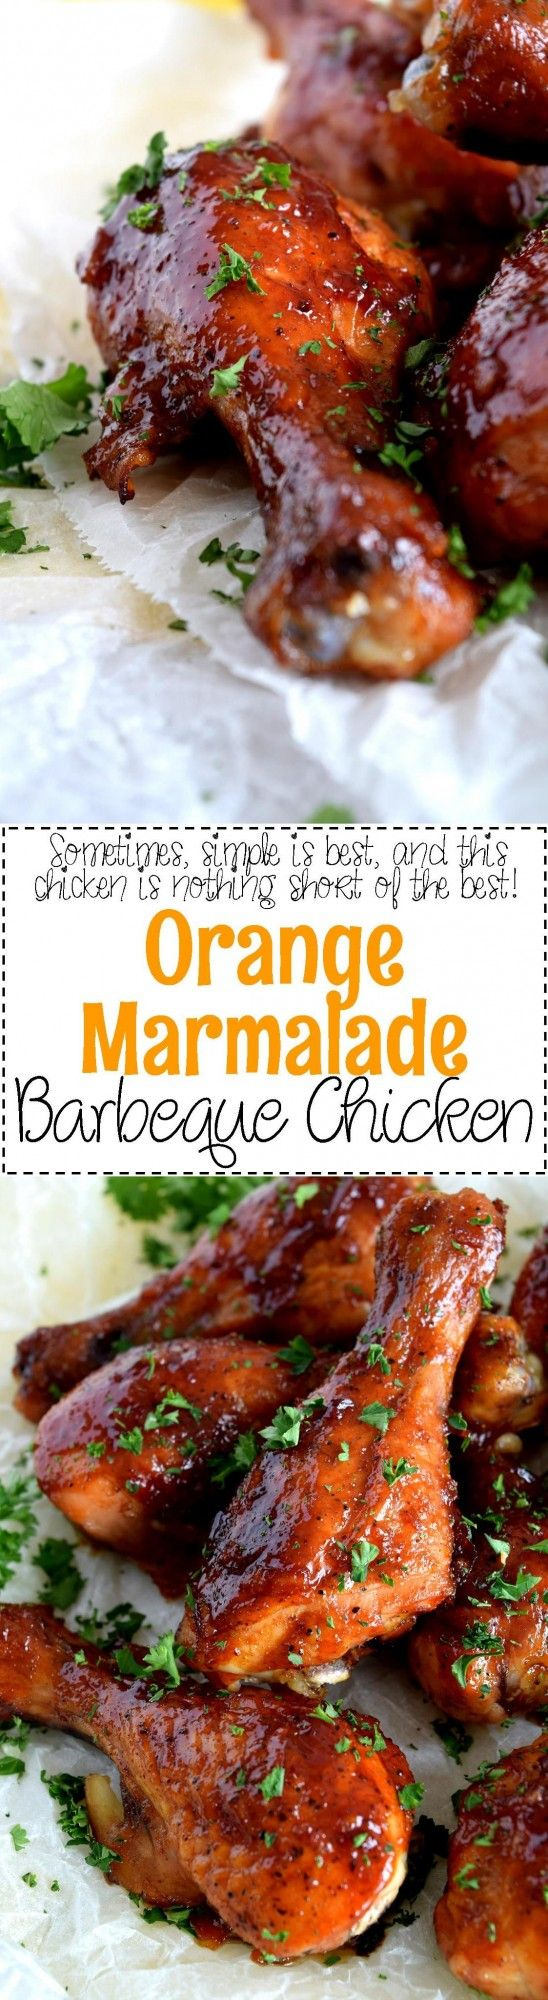 Orange Marmalade Barbeque Chicken - Lord Byron's Kitchen A deliciously easy and budget friendly dish which uses only three ingredients.  Orange Marmalade Barbeque Chicken is about to make your dinnertime rush so much more relaxed and yummy! #chicken #dinner #easy